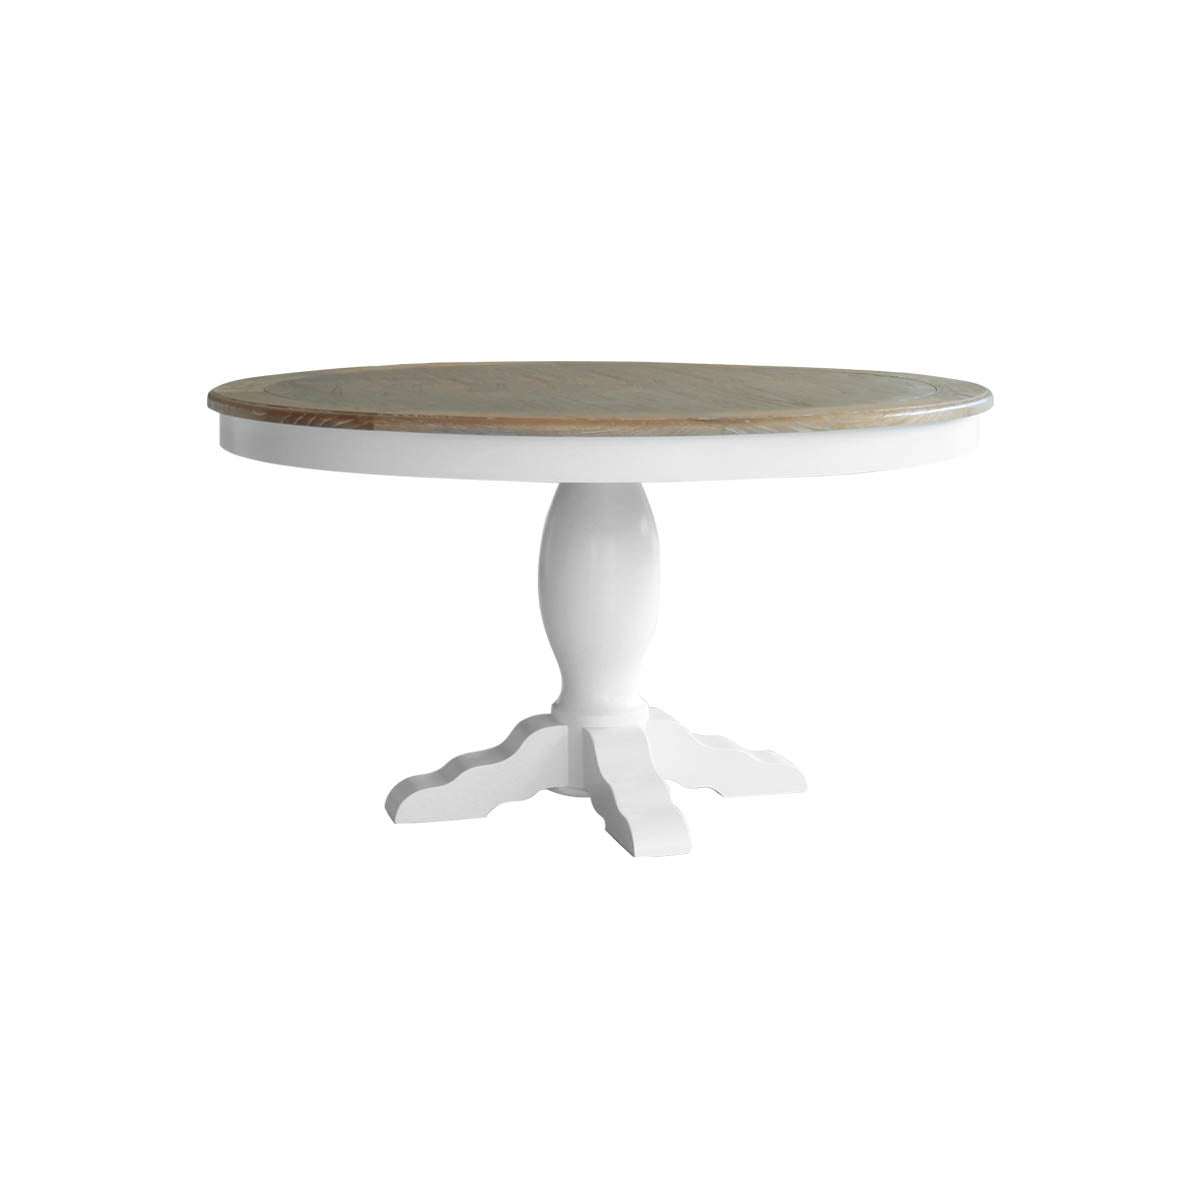 indonesian furniture - round dining table with white base and brown wood top